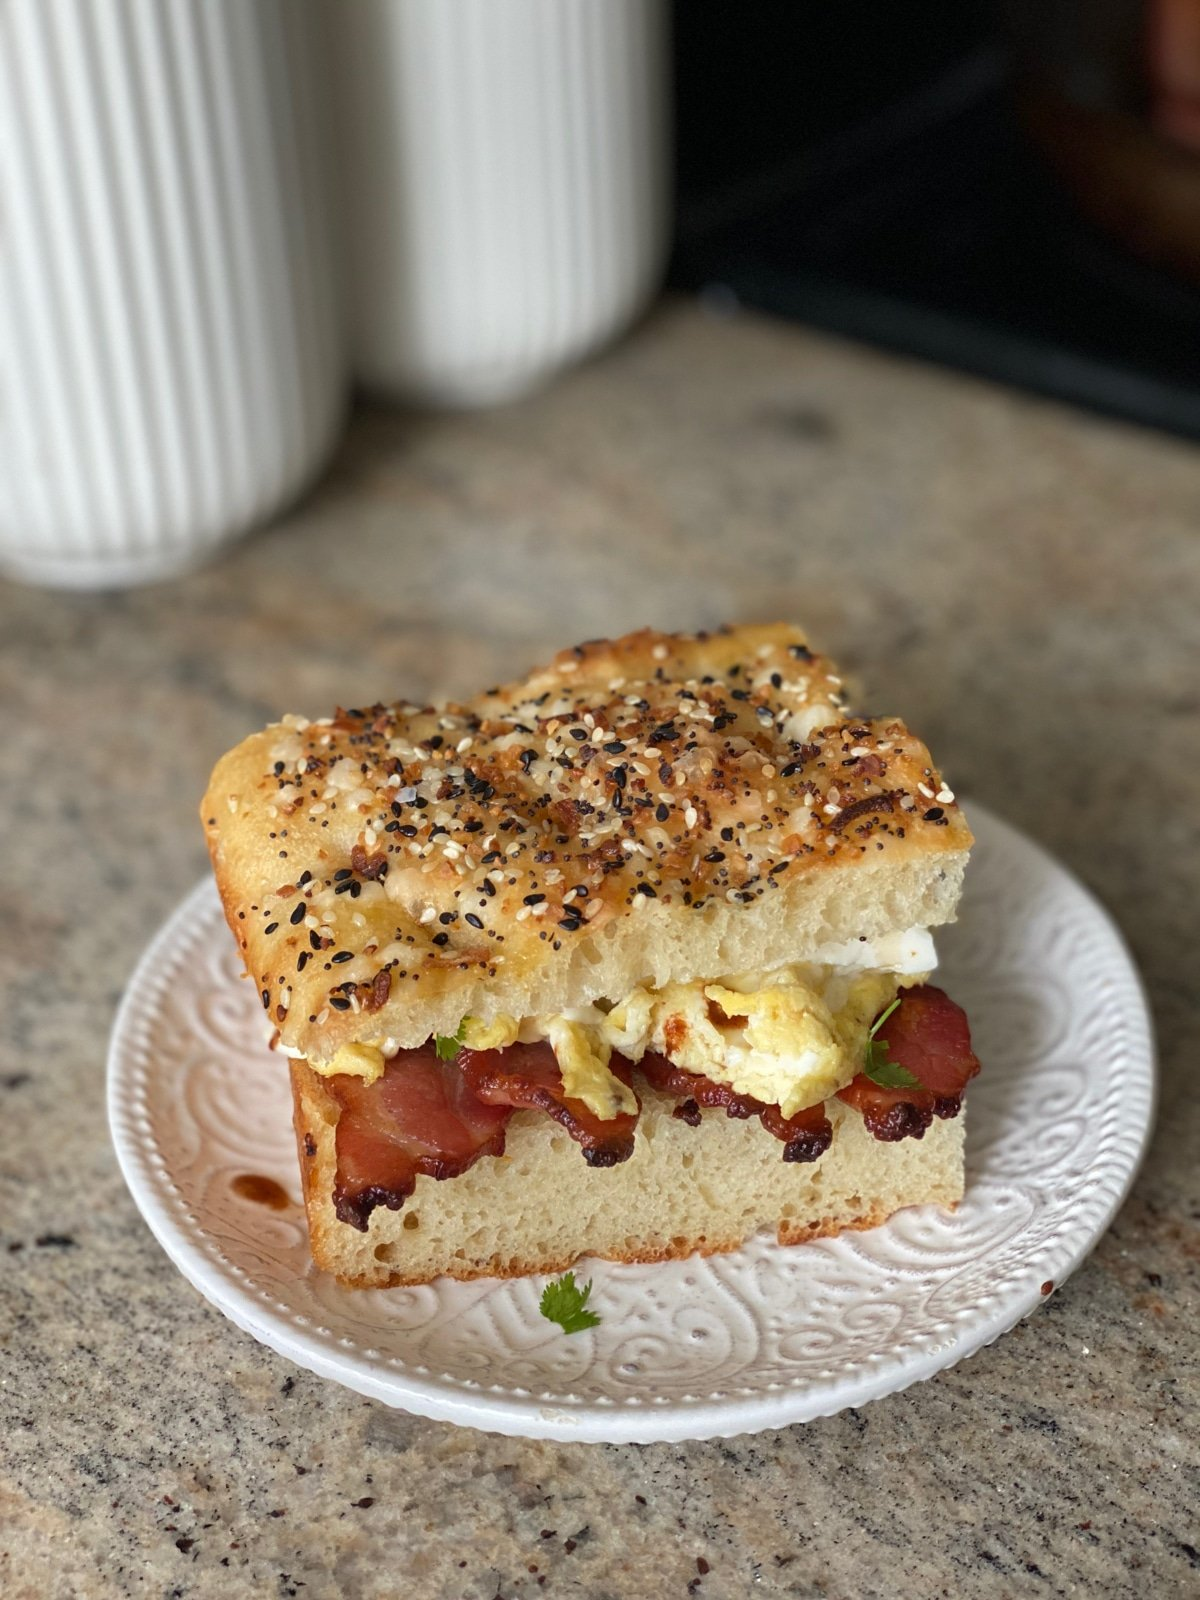 Gourmet bacon and egg sandwich on focaccia